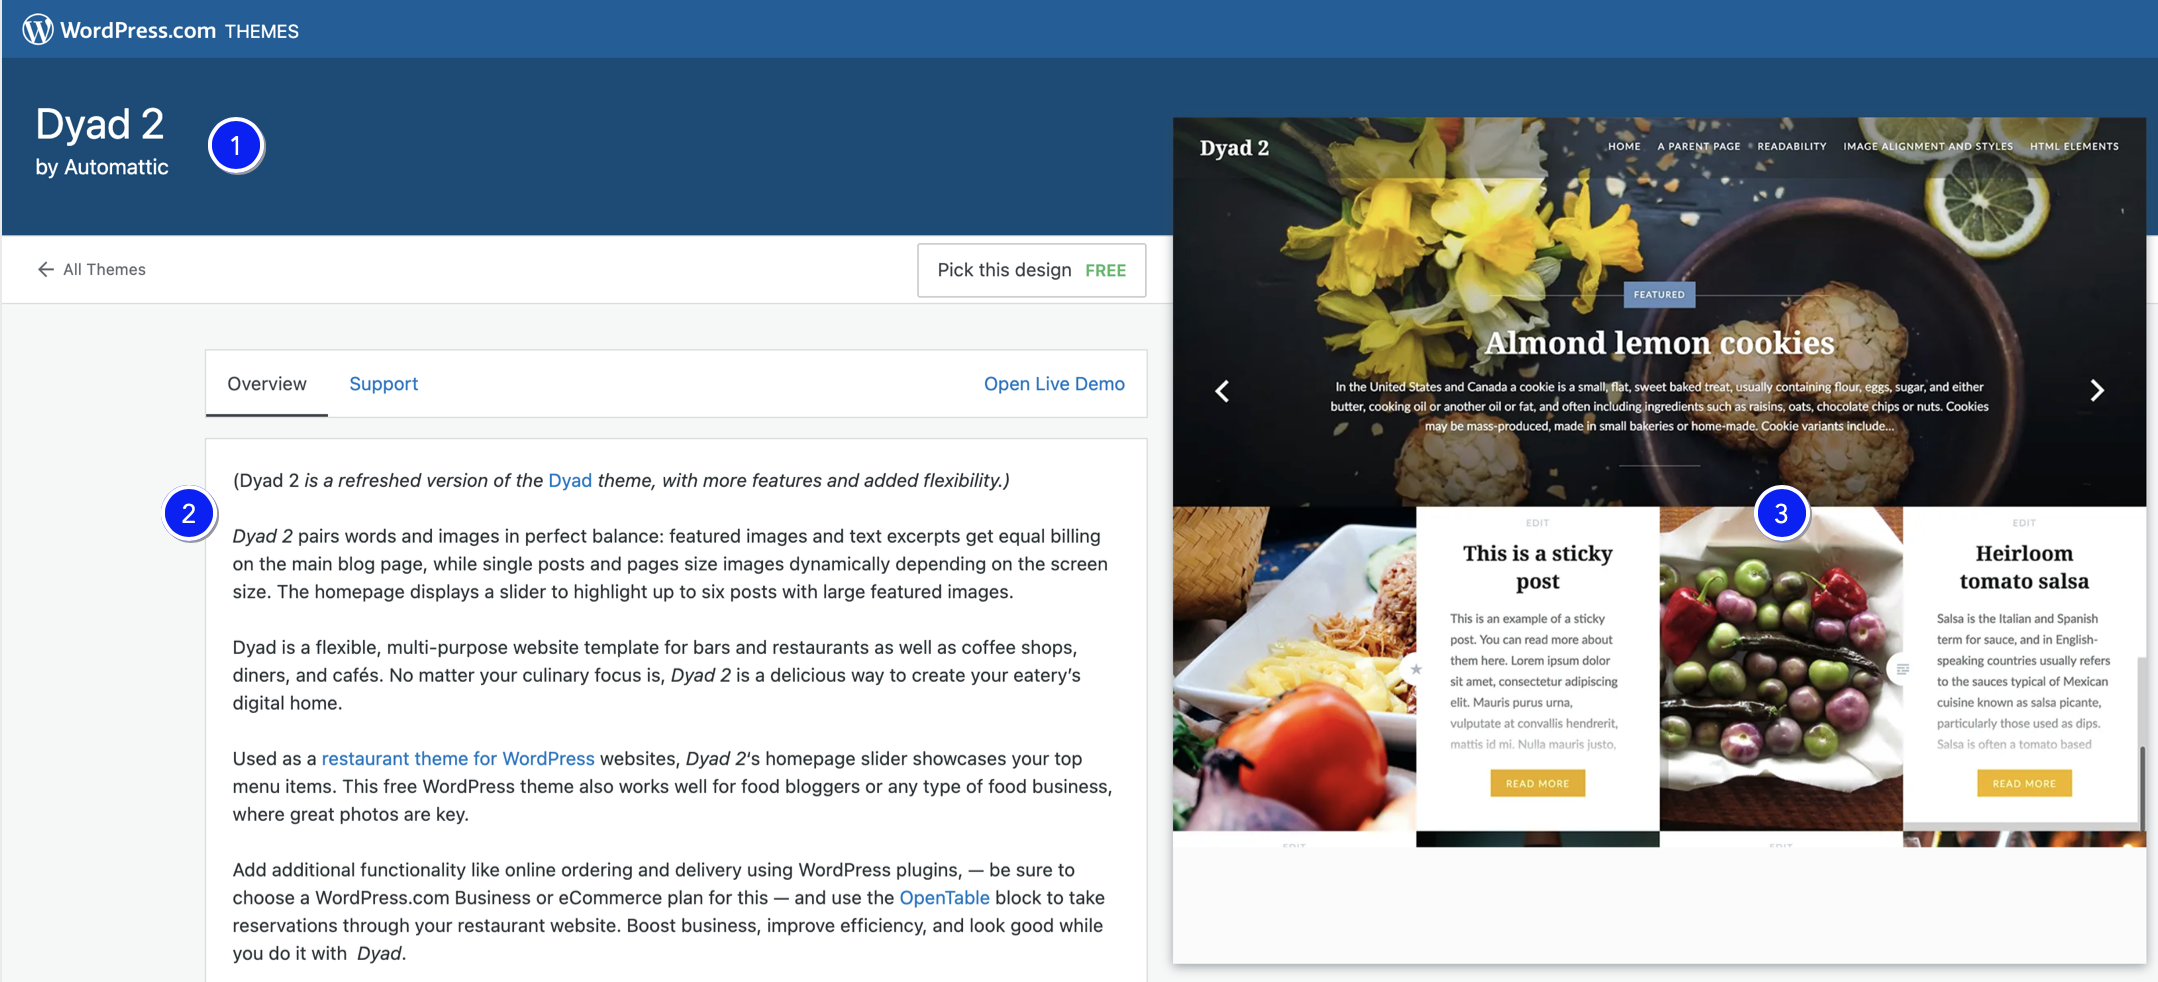 A screenshot of the Dyad 2 themed template on WordPress.com, including a block of text explaining the template's equal attention to words and images, and a sample use of the template to showcase recipes. The numbers 1, 2, and 3 on the screenshot correspond to my comments.